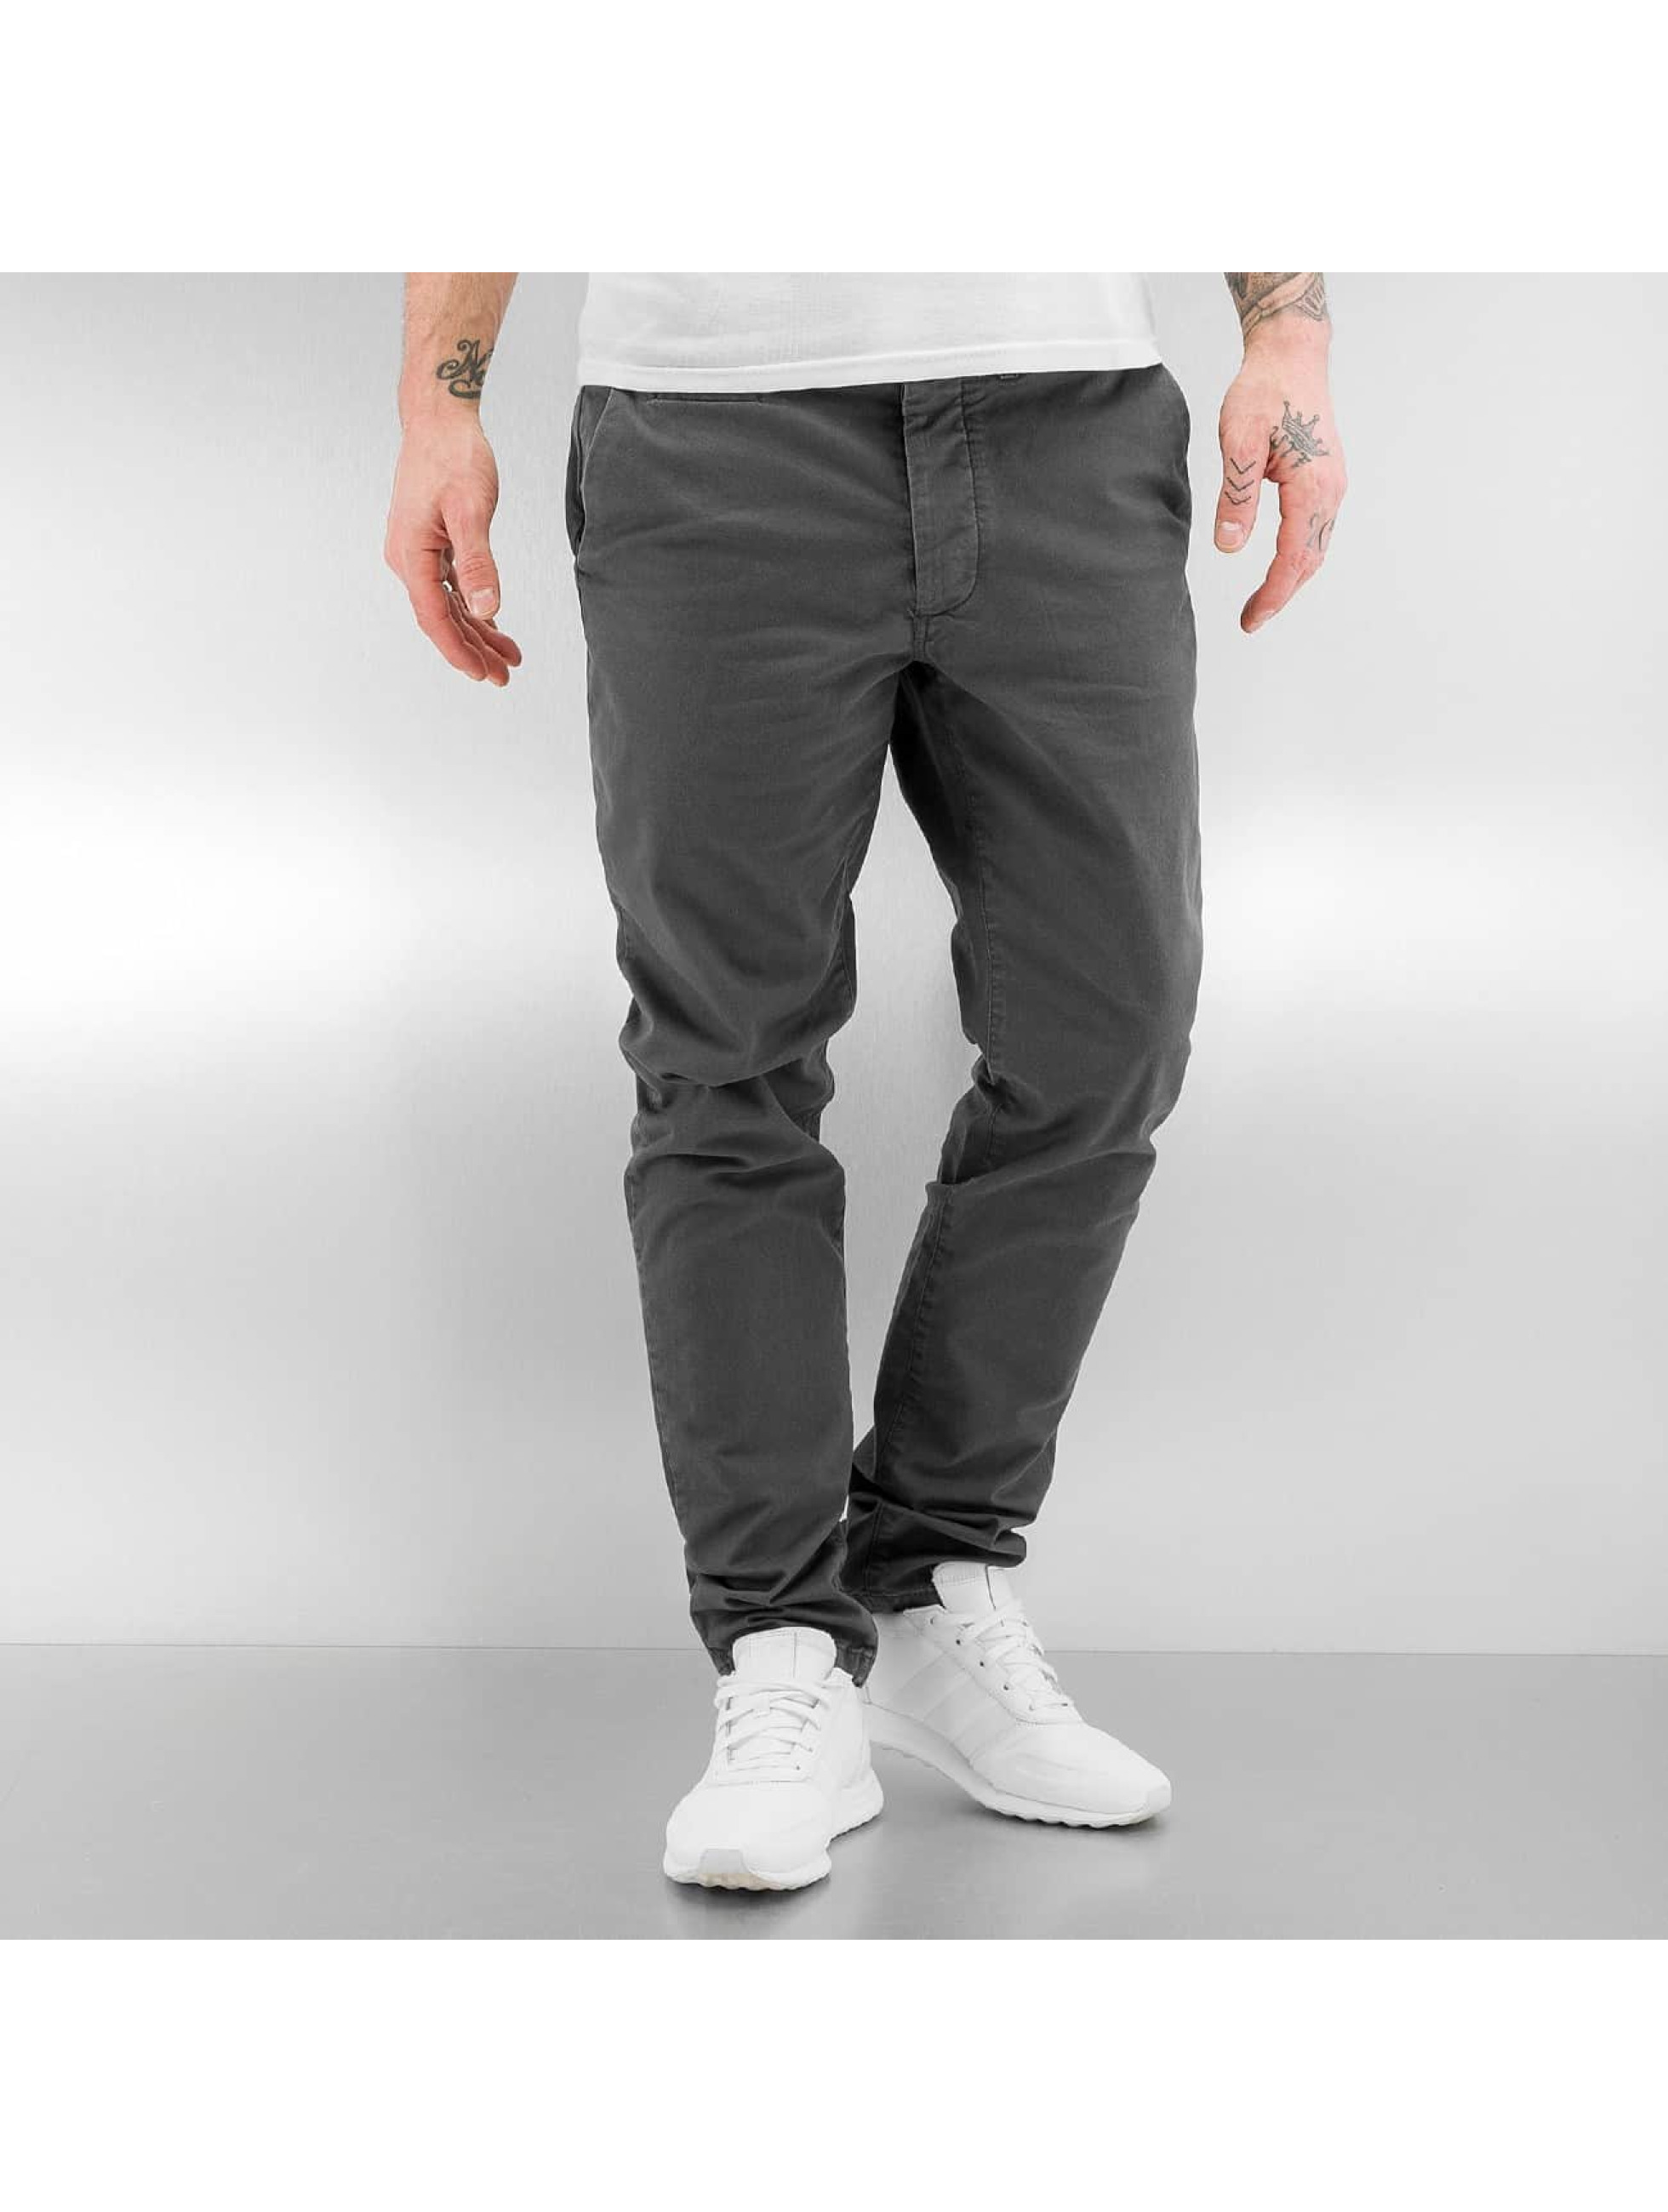 Jack & Jones Männer Chino jjiMarco jjEnzo in grau